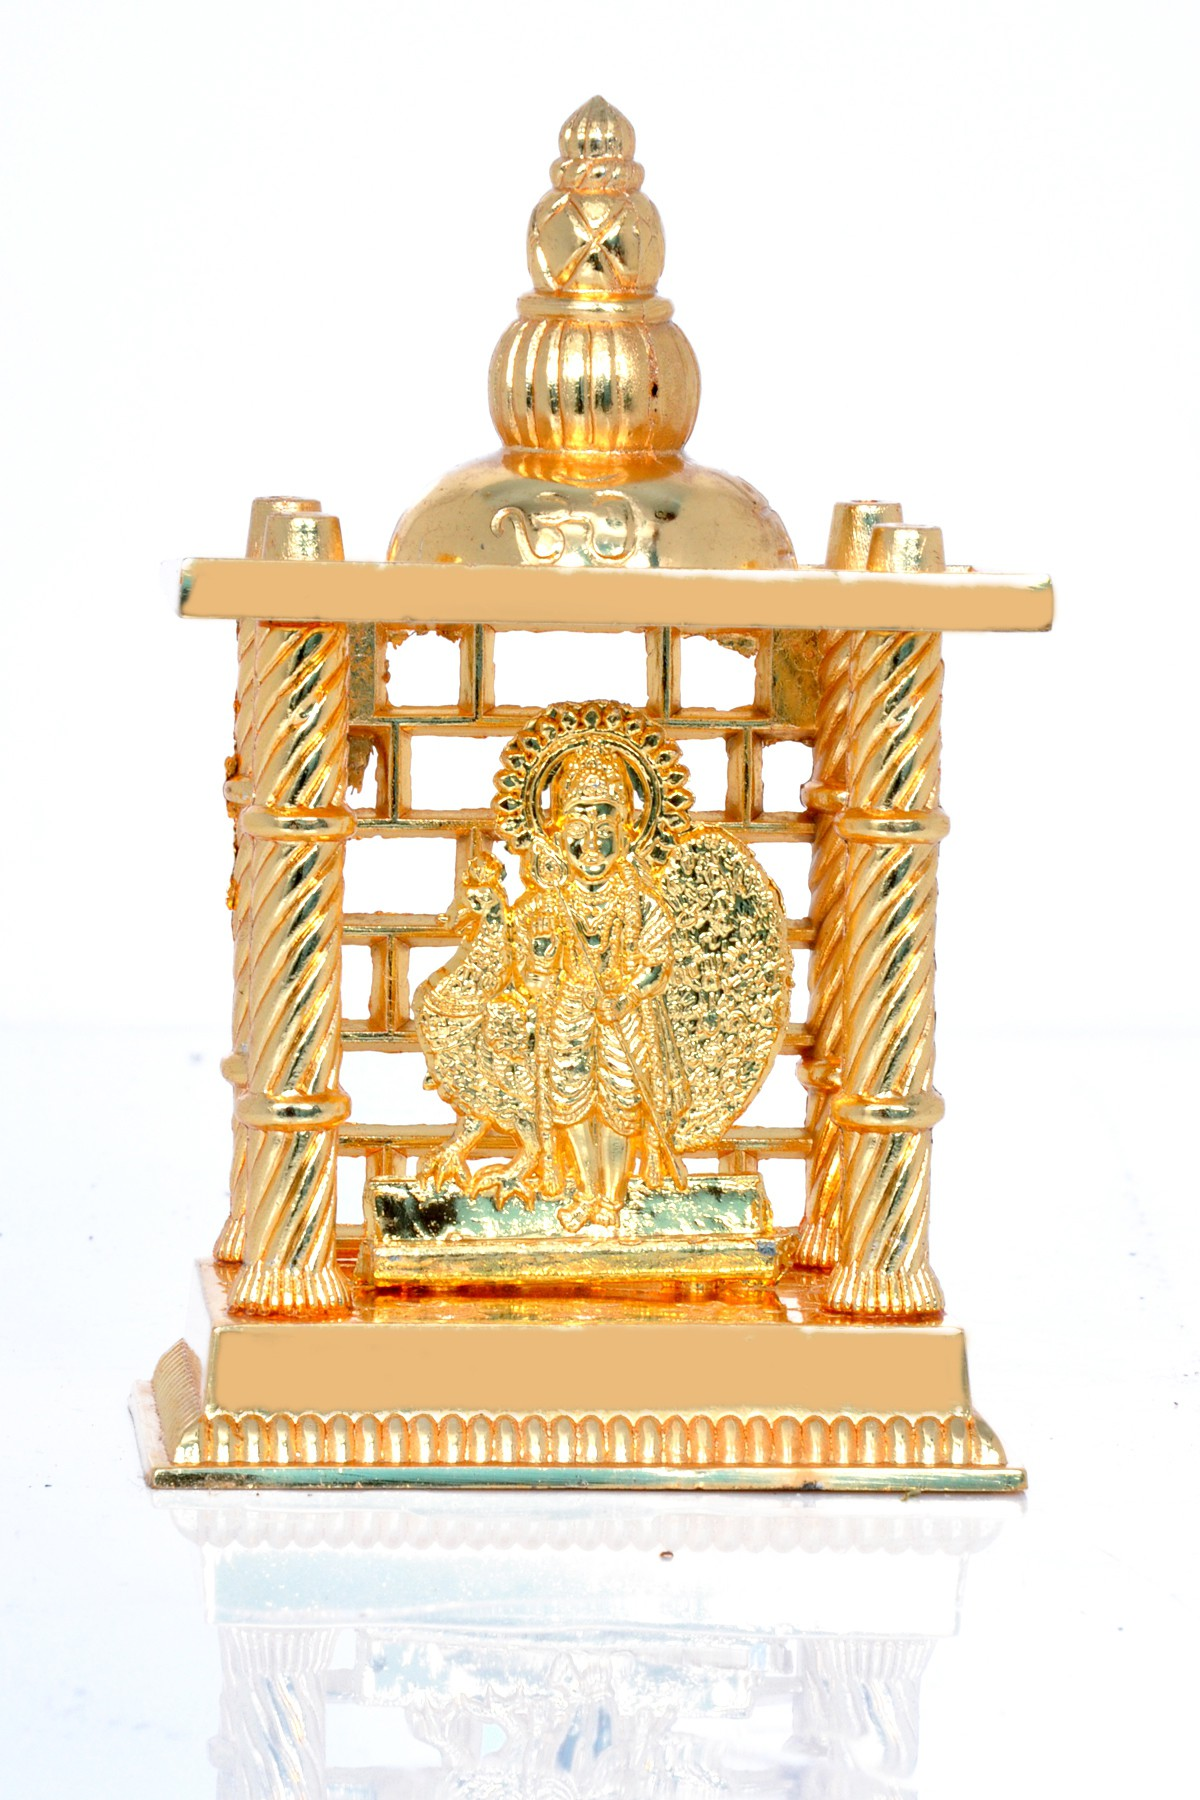 Hashcart Murugan Kartikeye idol in Golden Finish (4.5 inch) Aluminium Home Temple